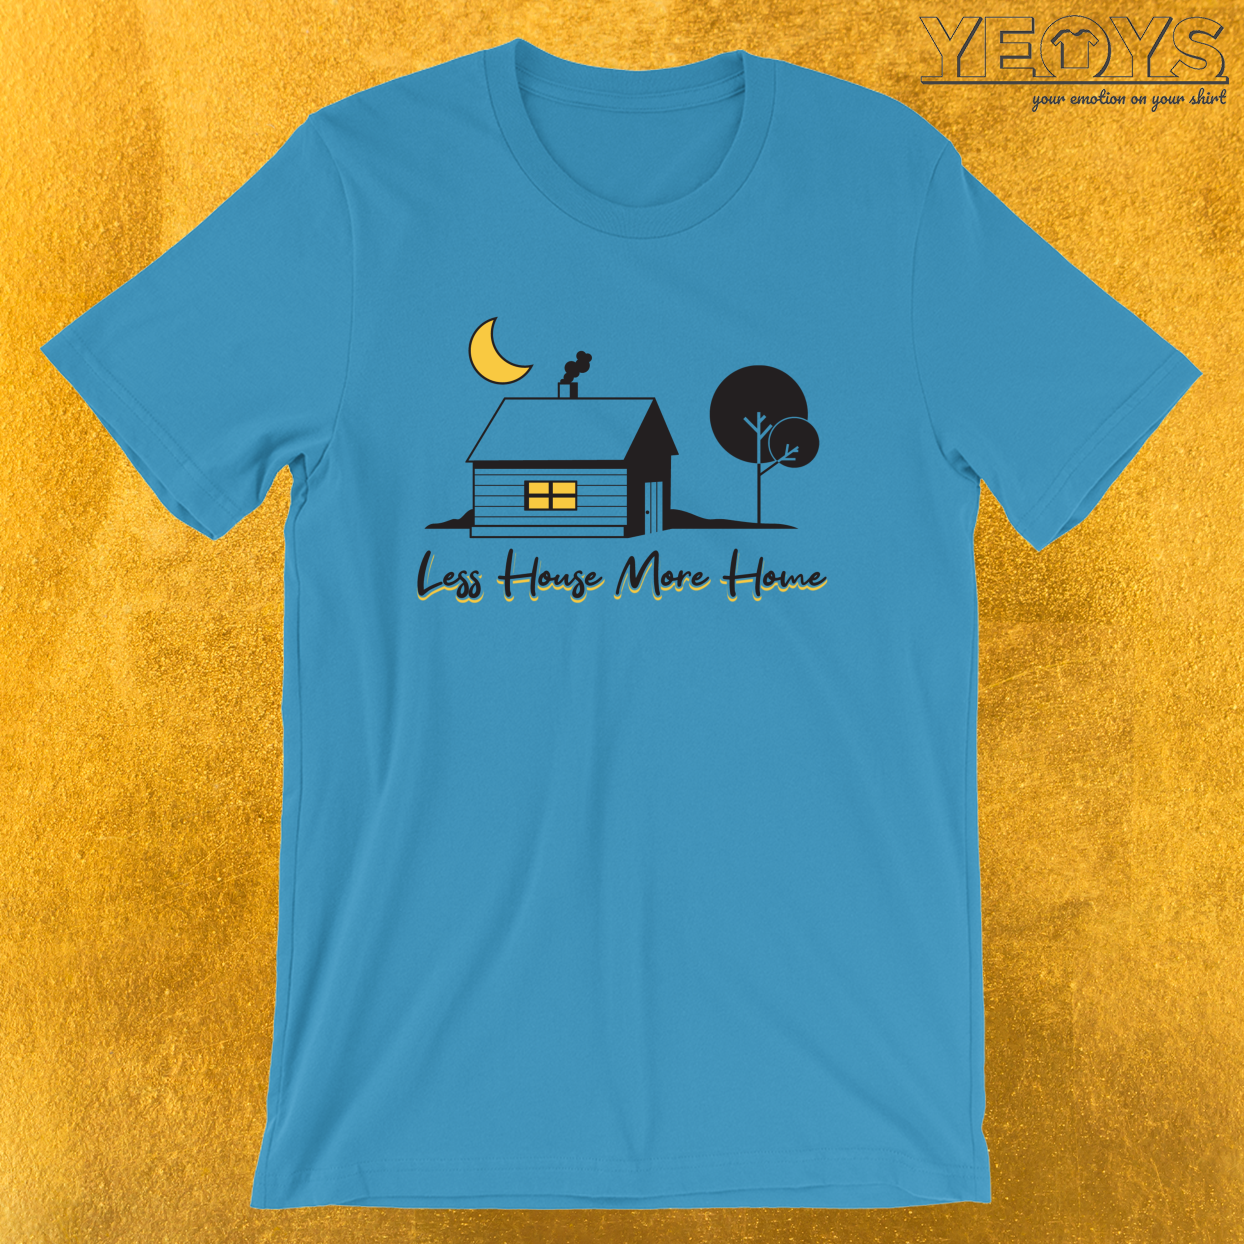 Less House More Home – Tiny House Tee